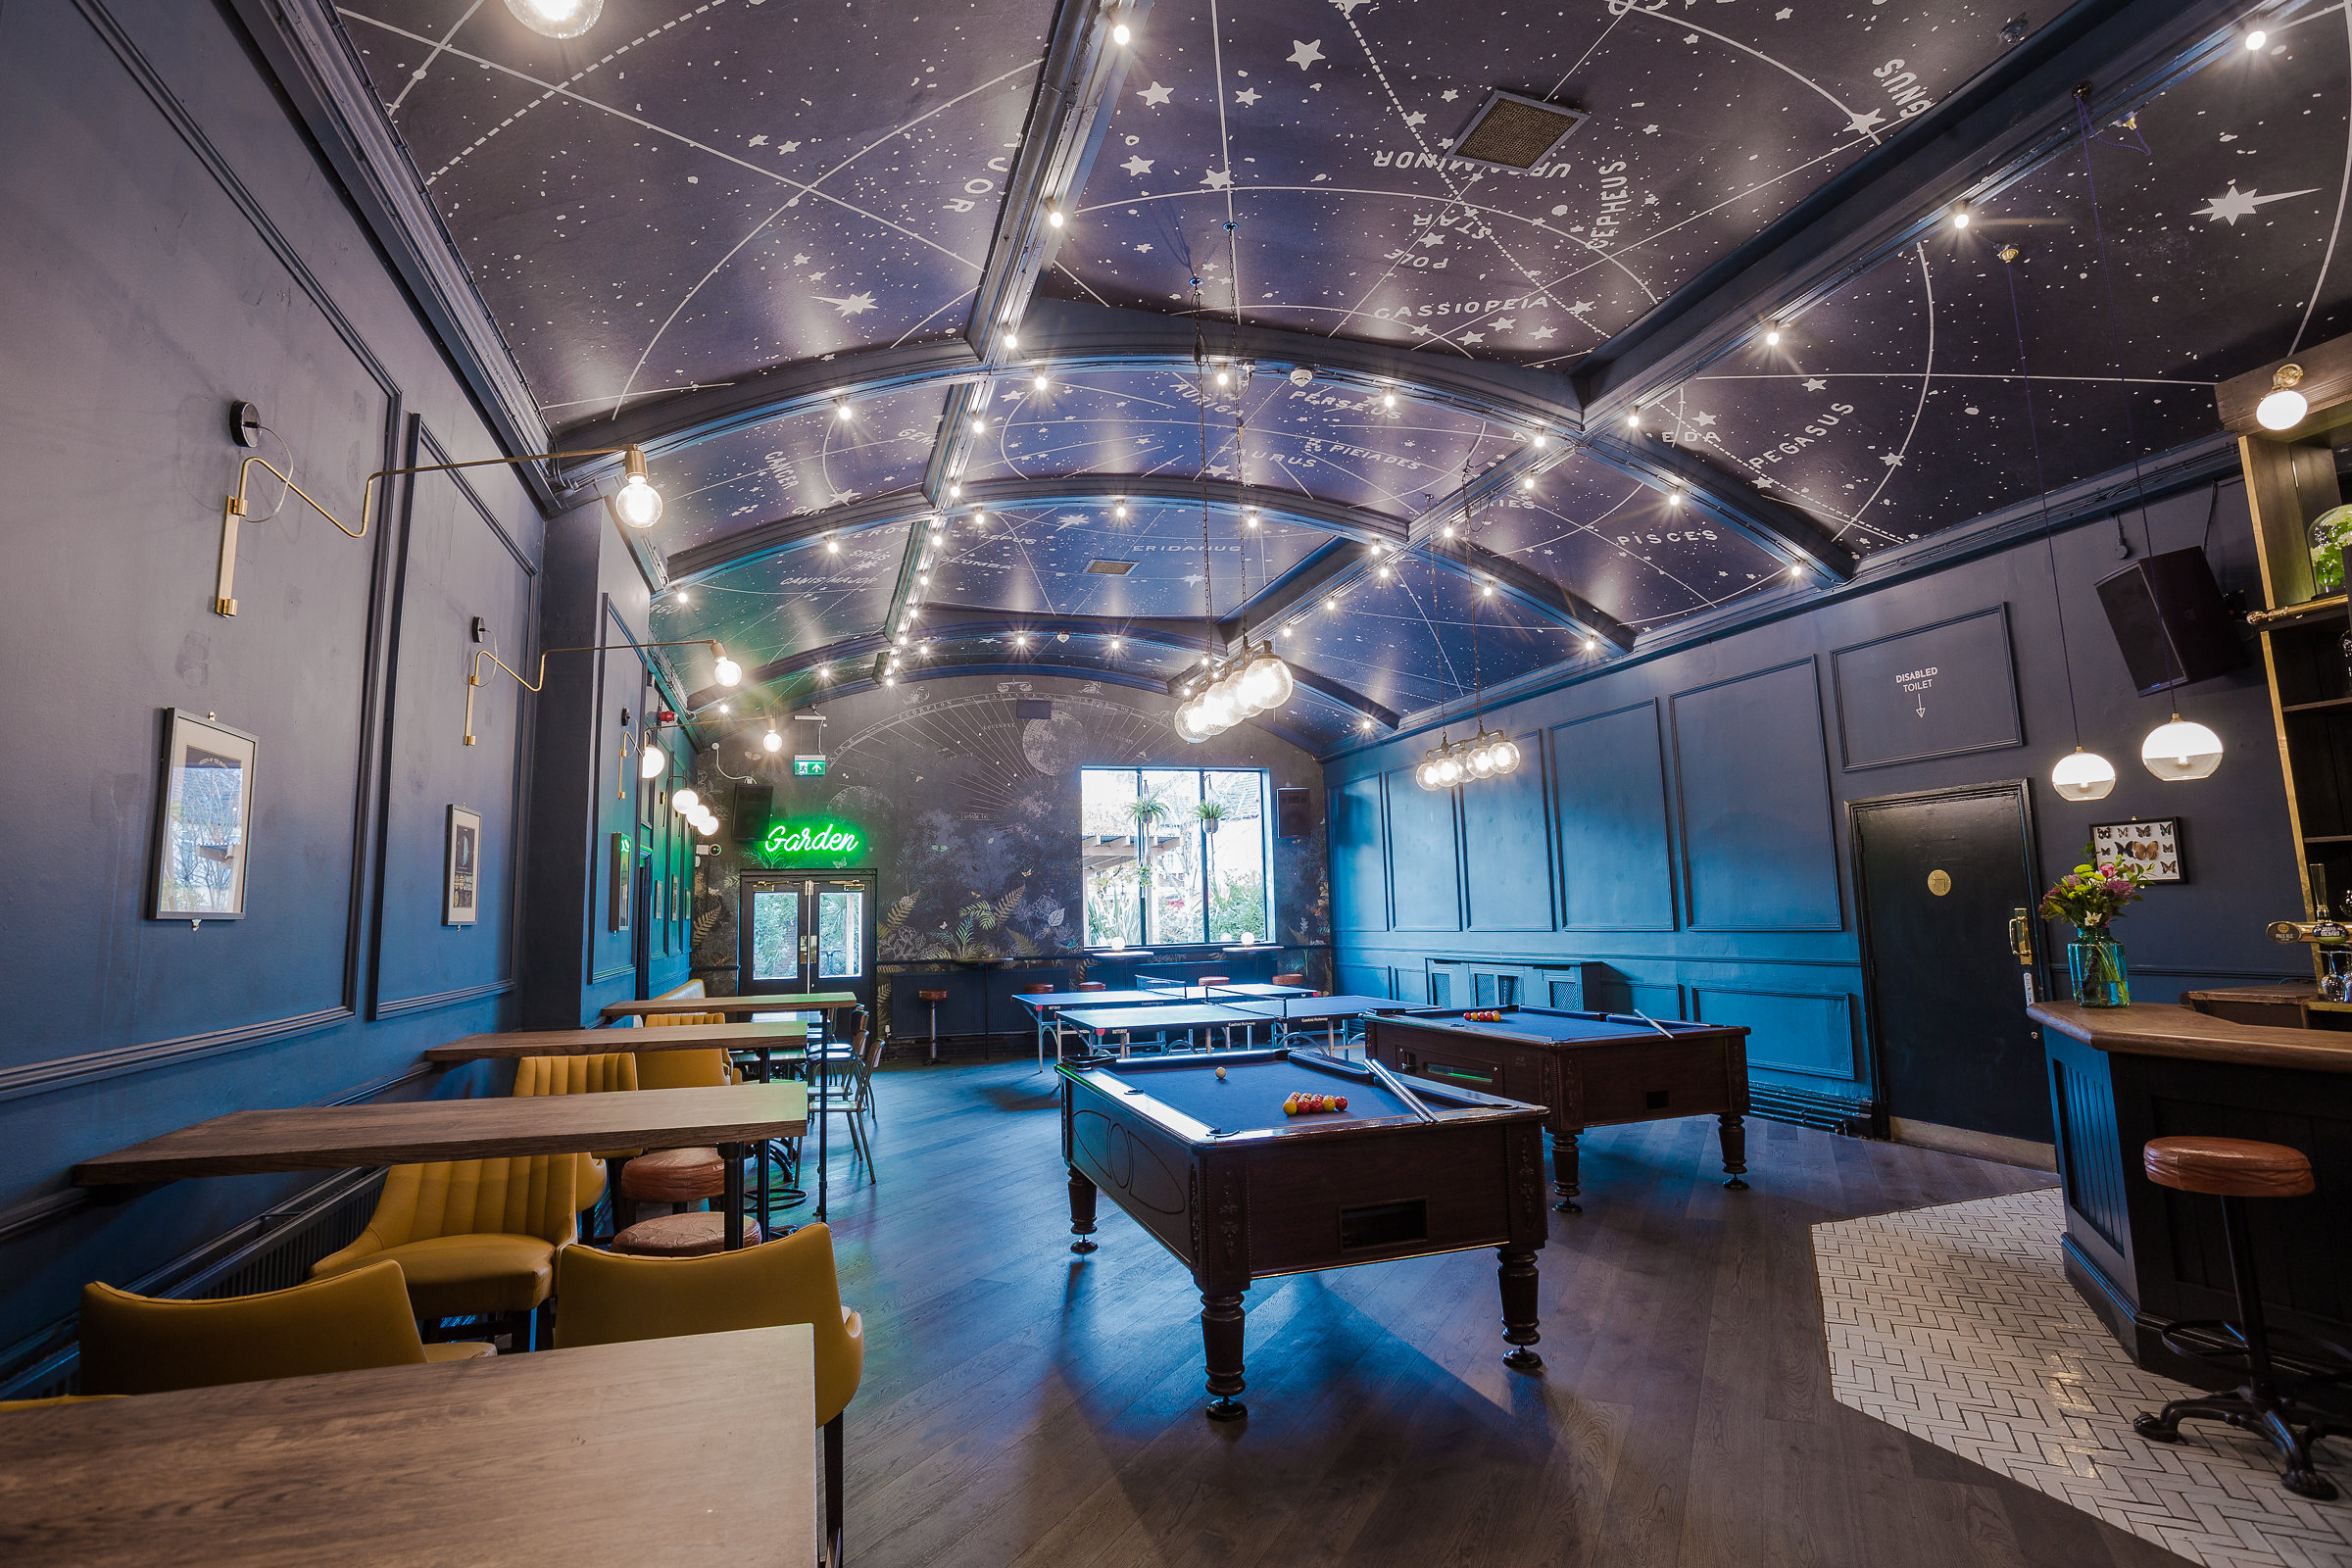 Cash Pool London Where To Play Pool In London Designmynight